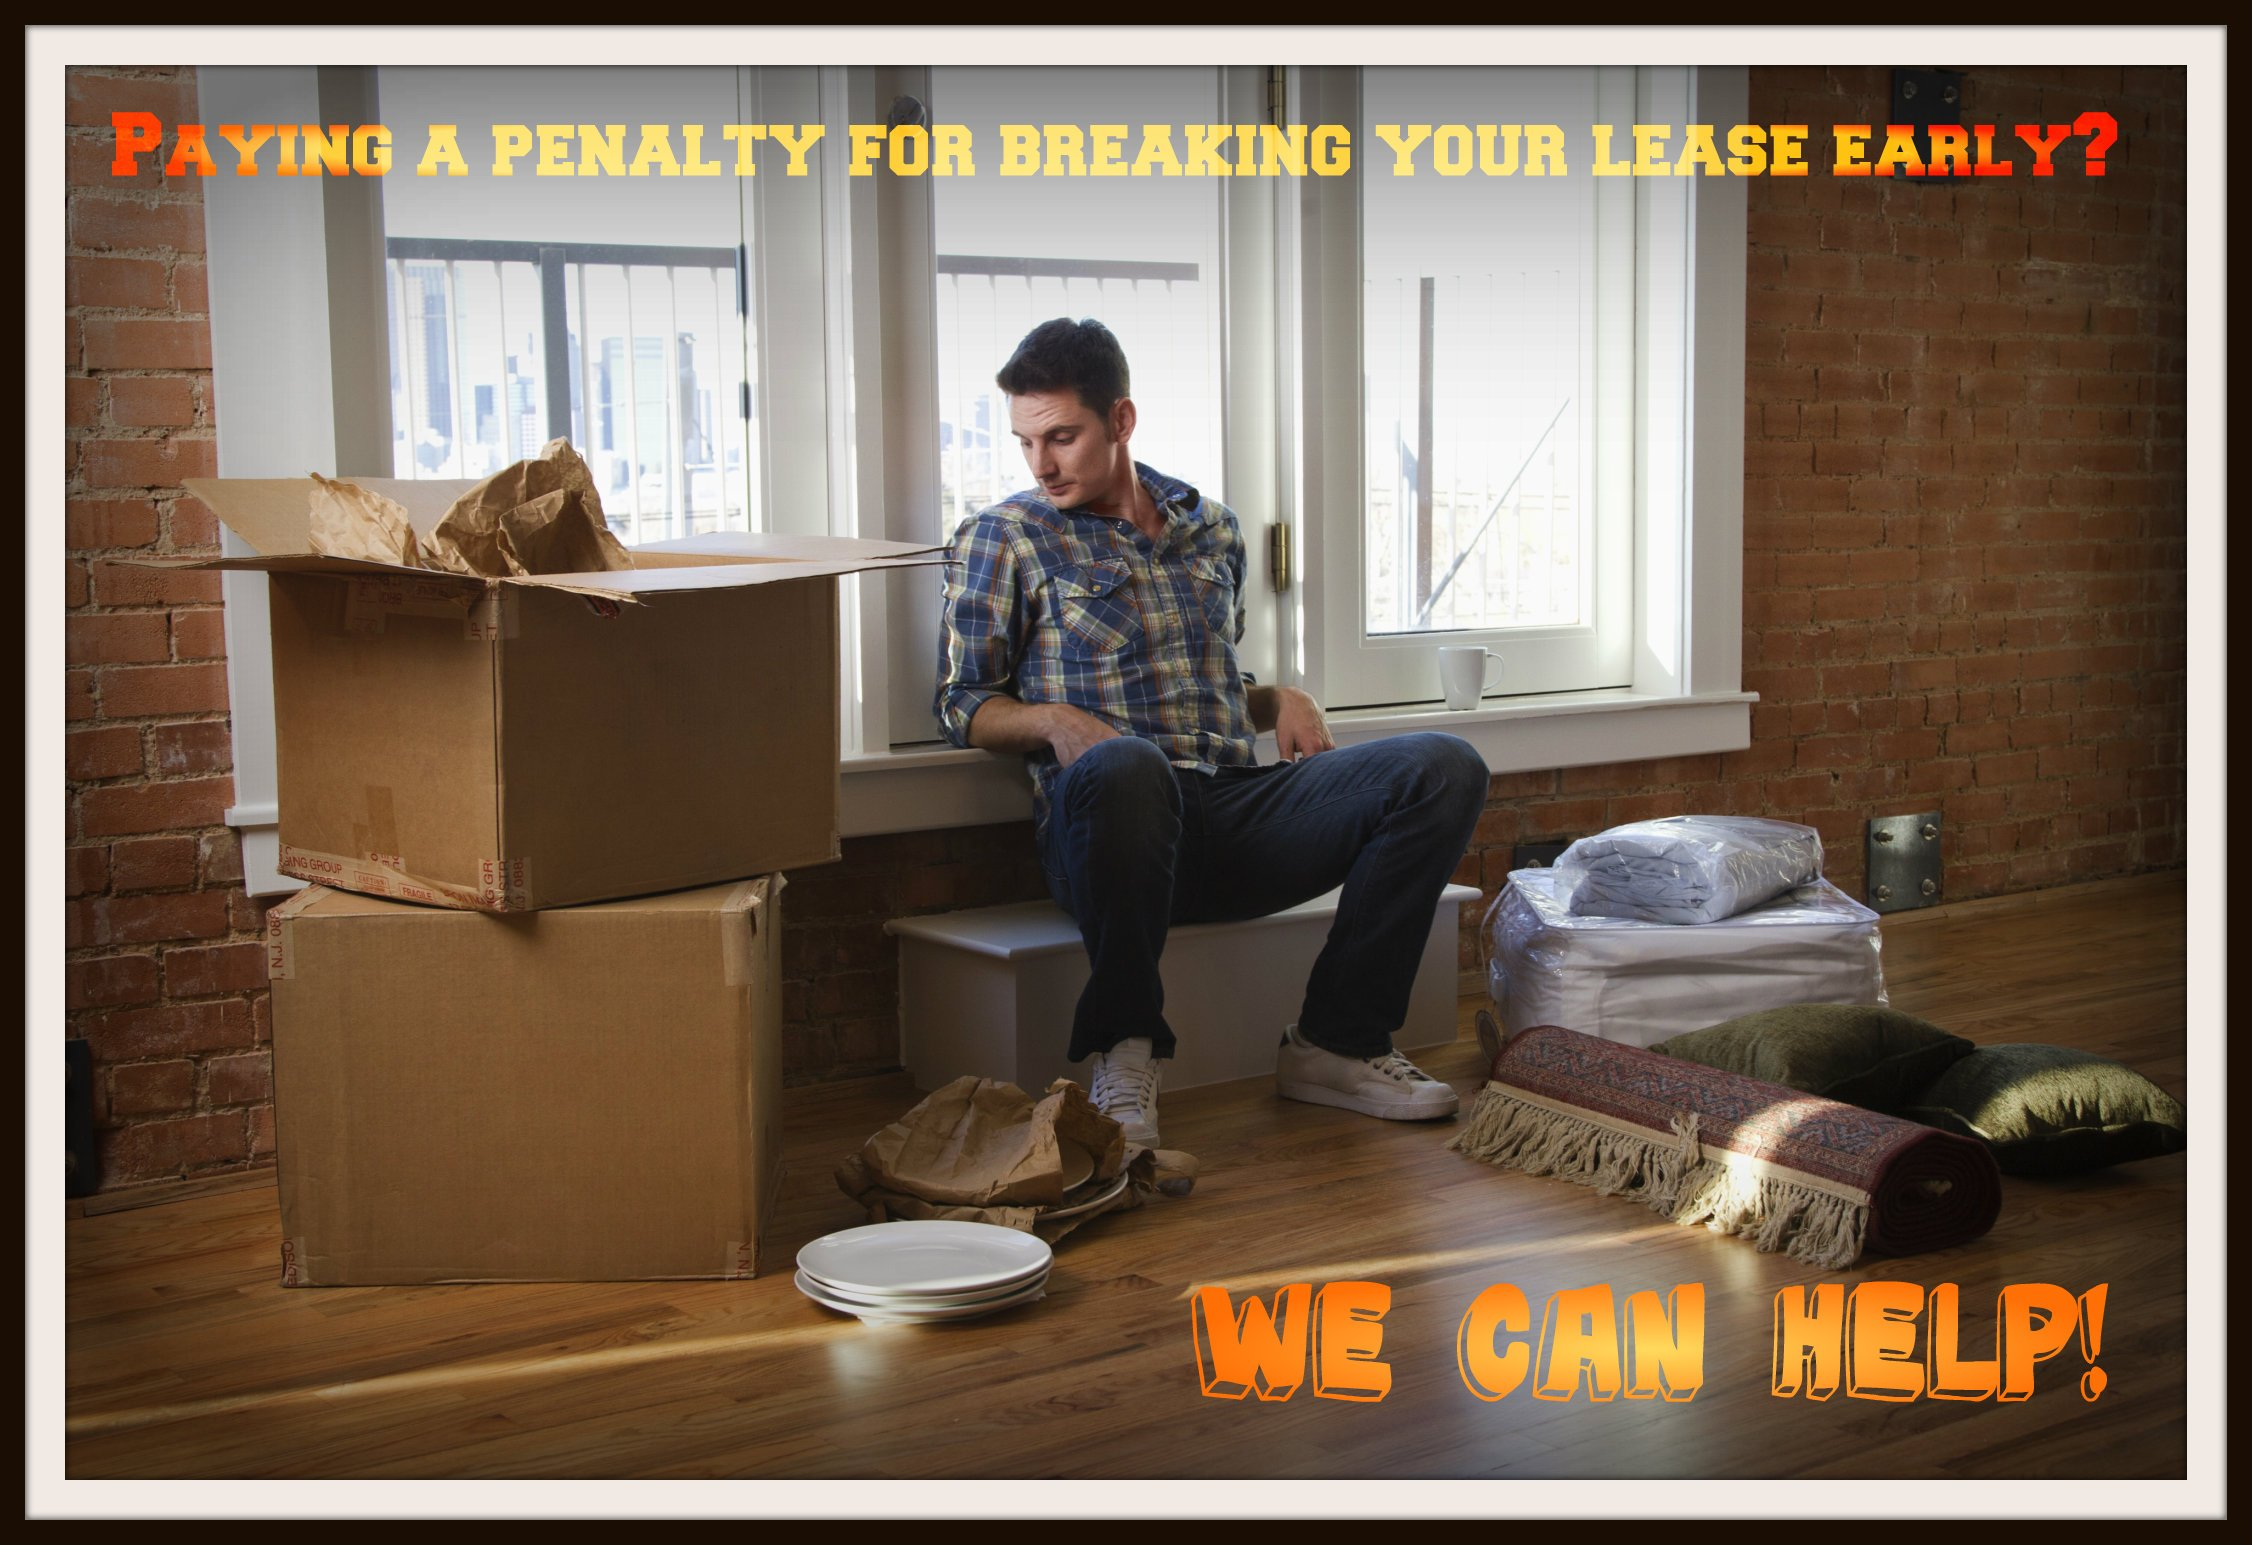 Penalty for breaking apartment lease early